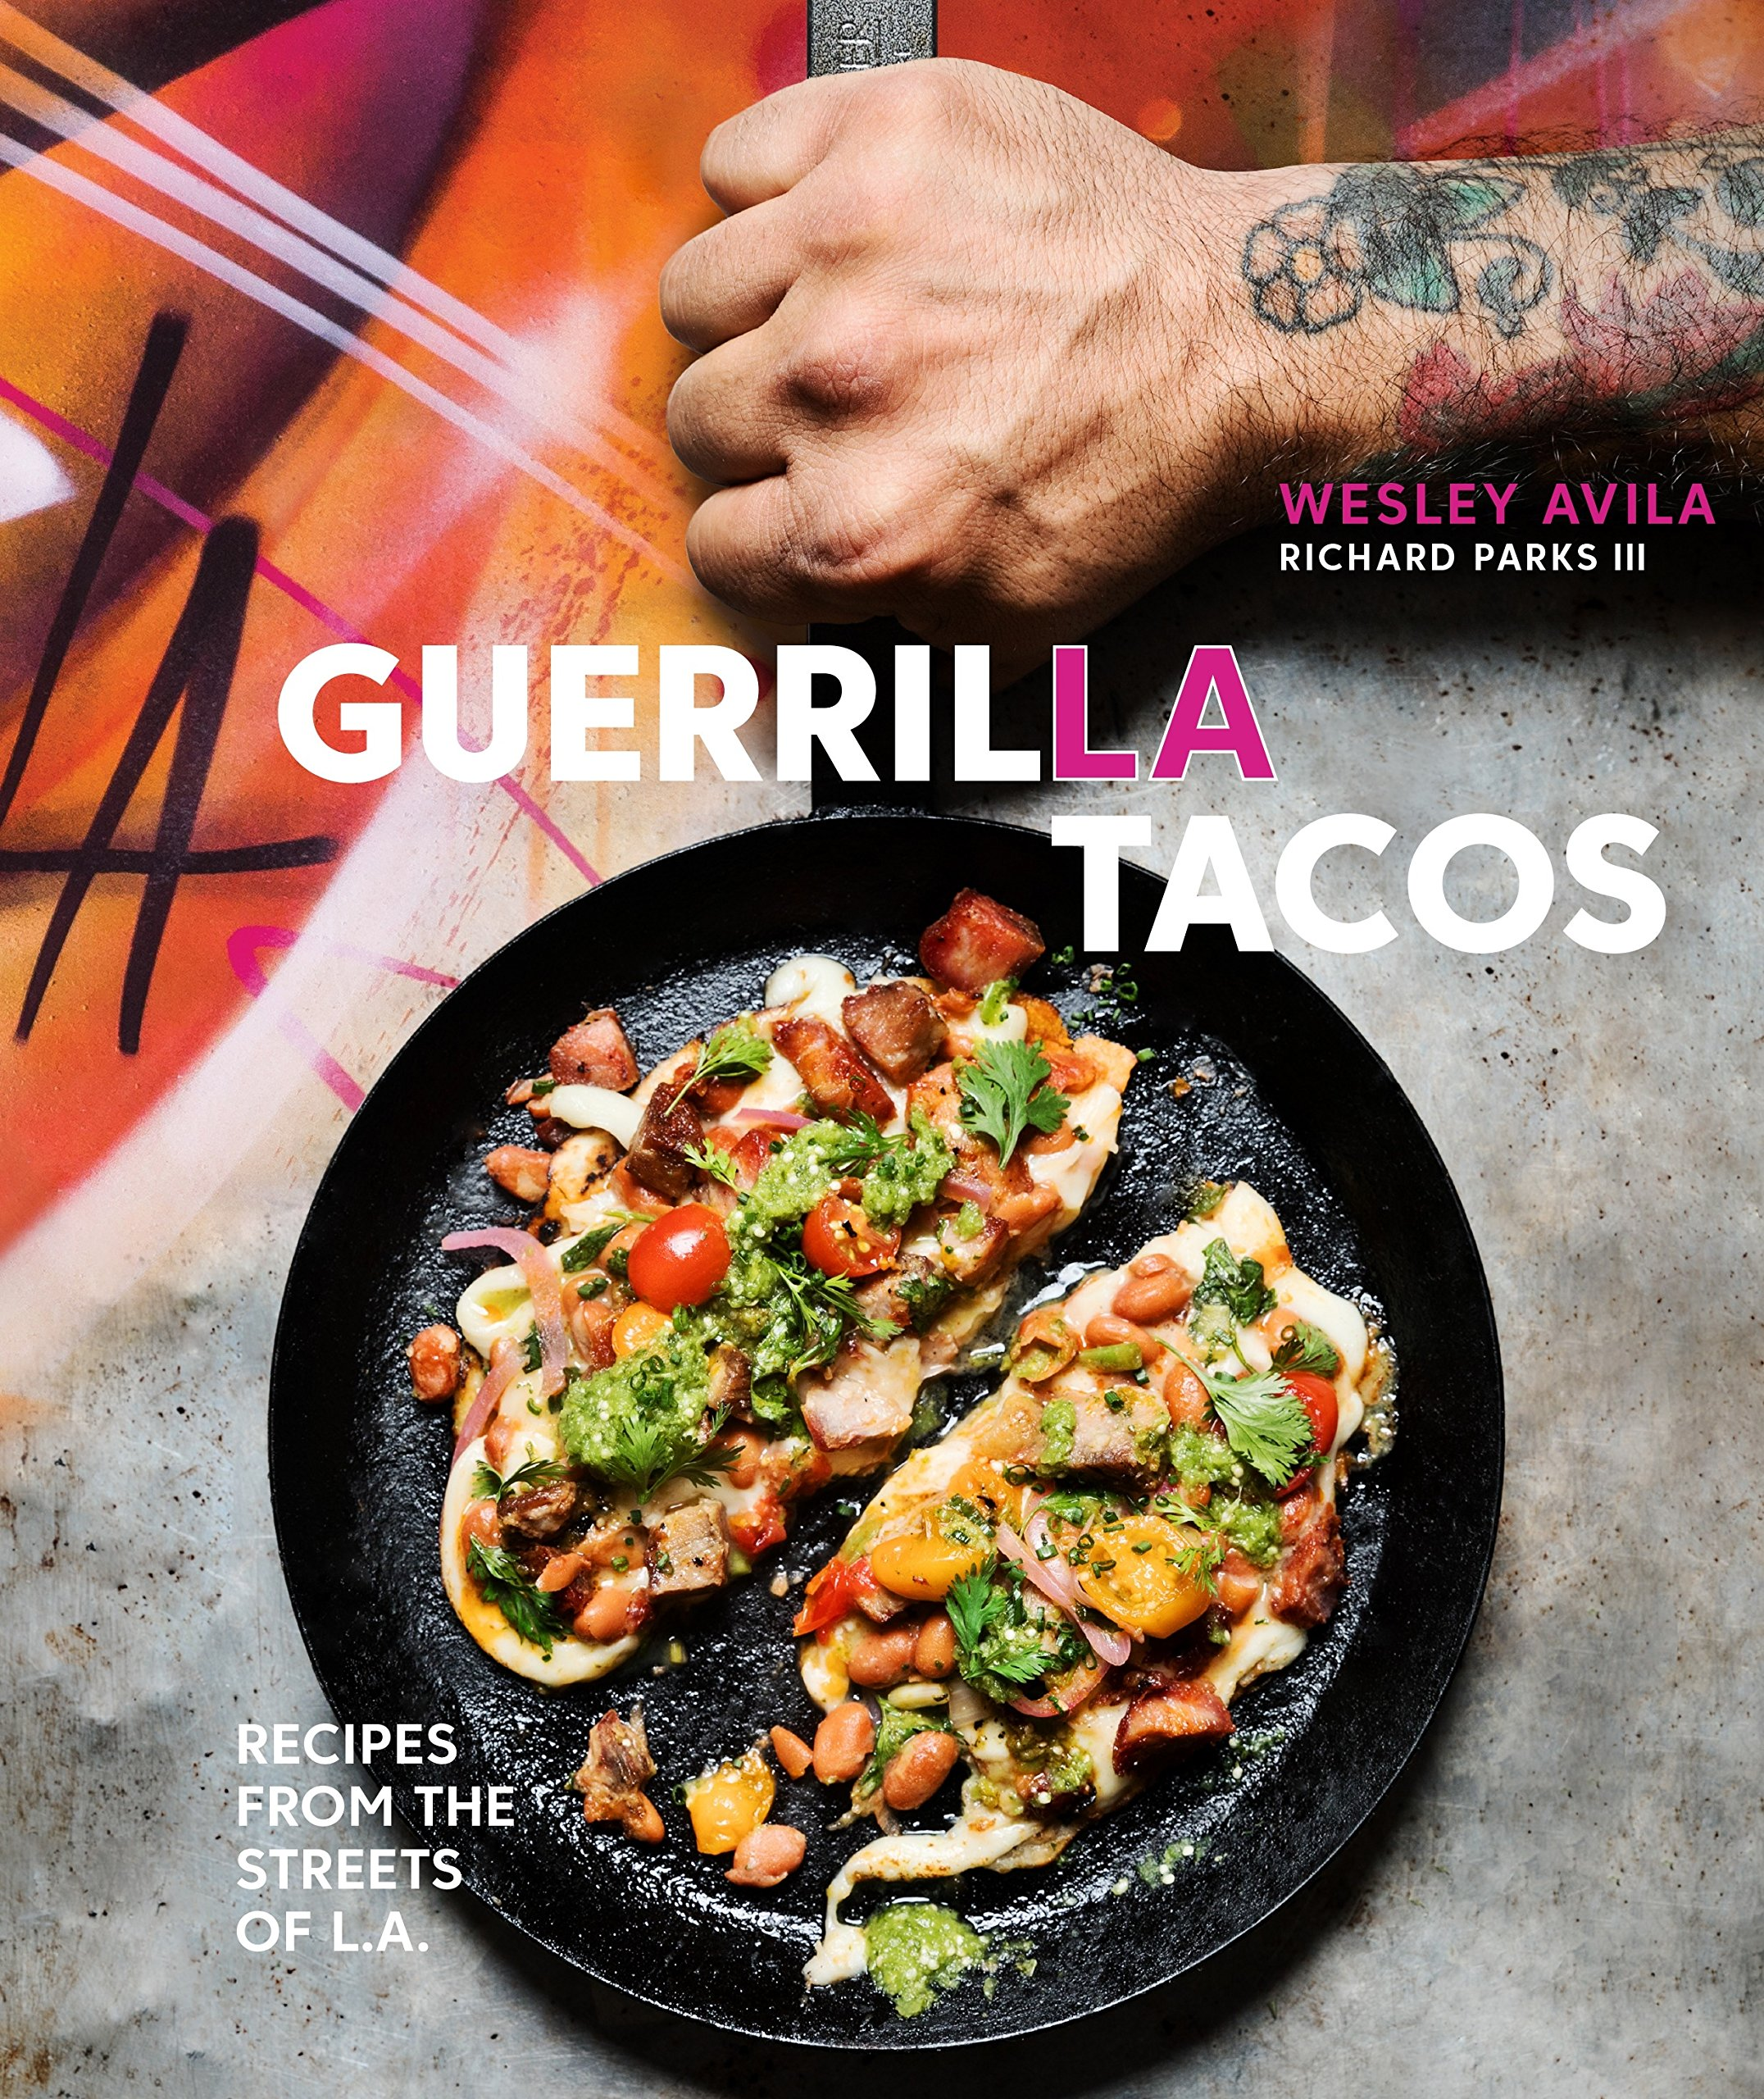 Guerrilla tacos recipes from the streets of la wesley avila guerrilla tacos recipes from the streets of la wesley avila richard parks iii 9780399578632 amazon books forumfinder Image collections